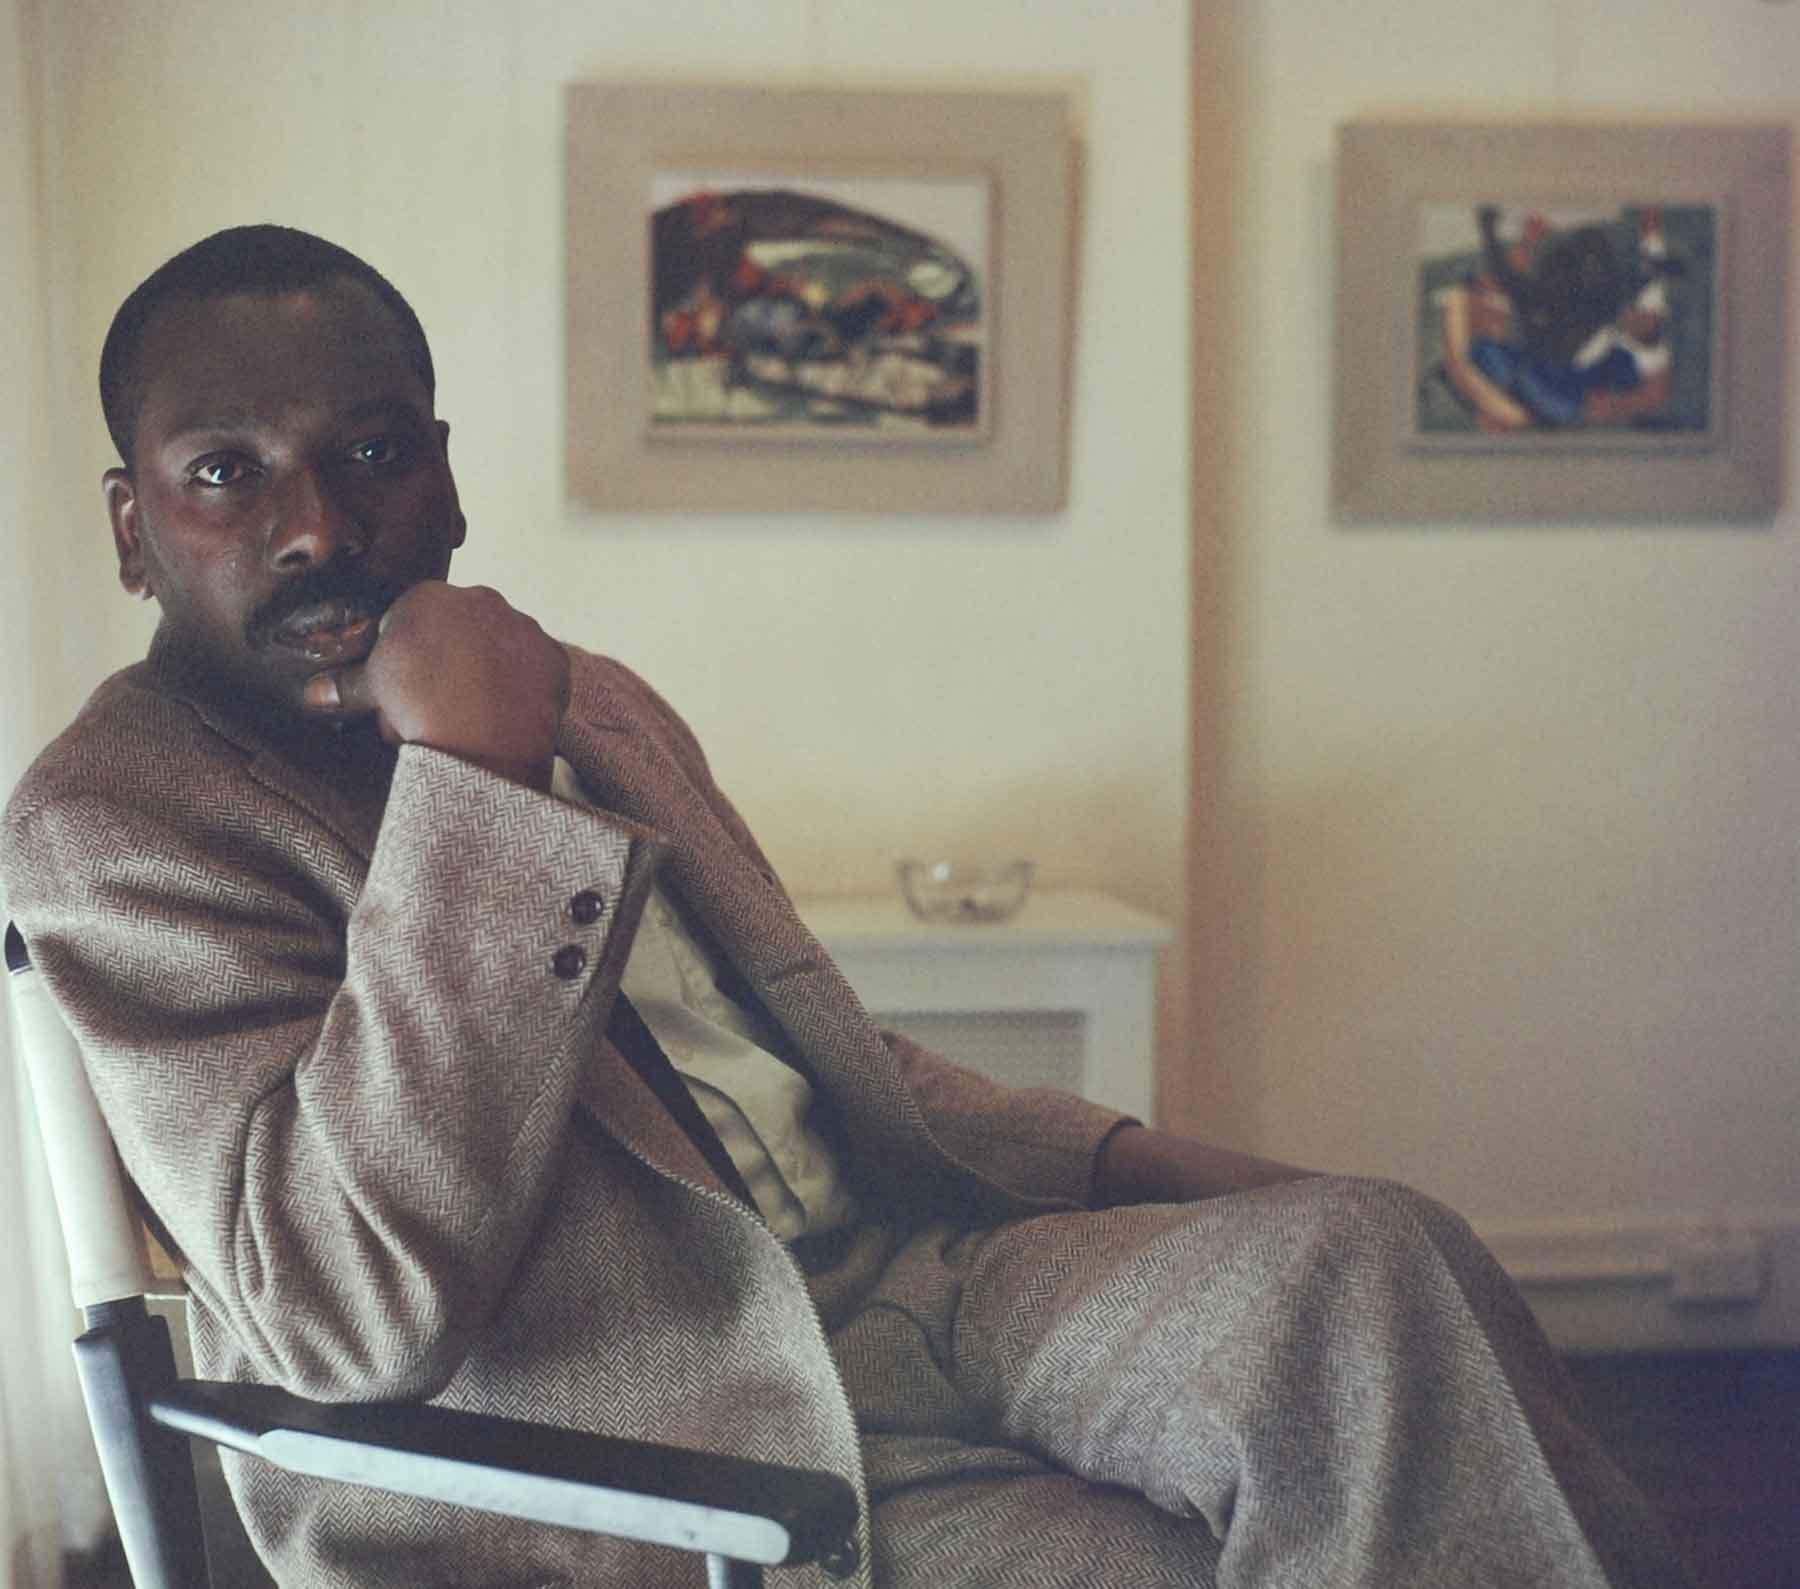 Jacob Lawrence seated in front of Struggle panels 26 and 27, 1958. © Robert W. Kelley/The LIFE Picture Collection/Getty Images.